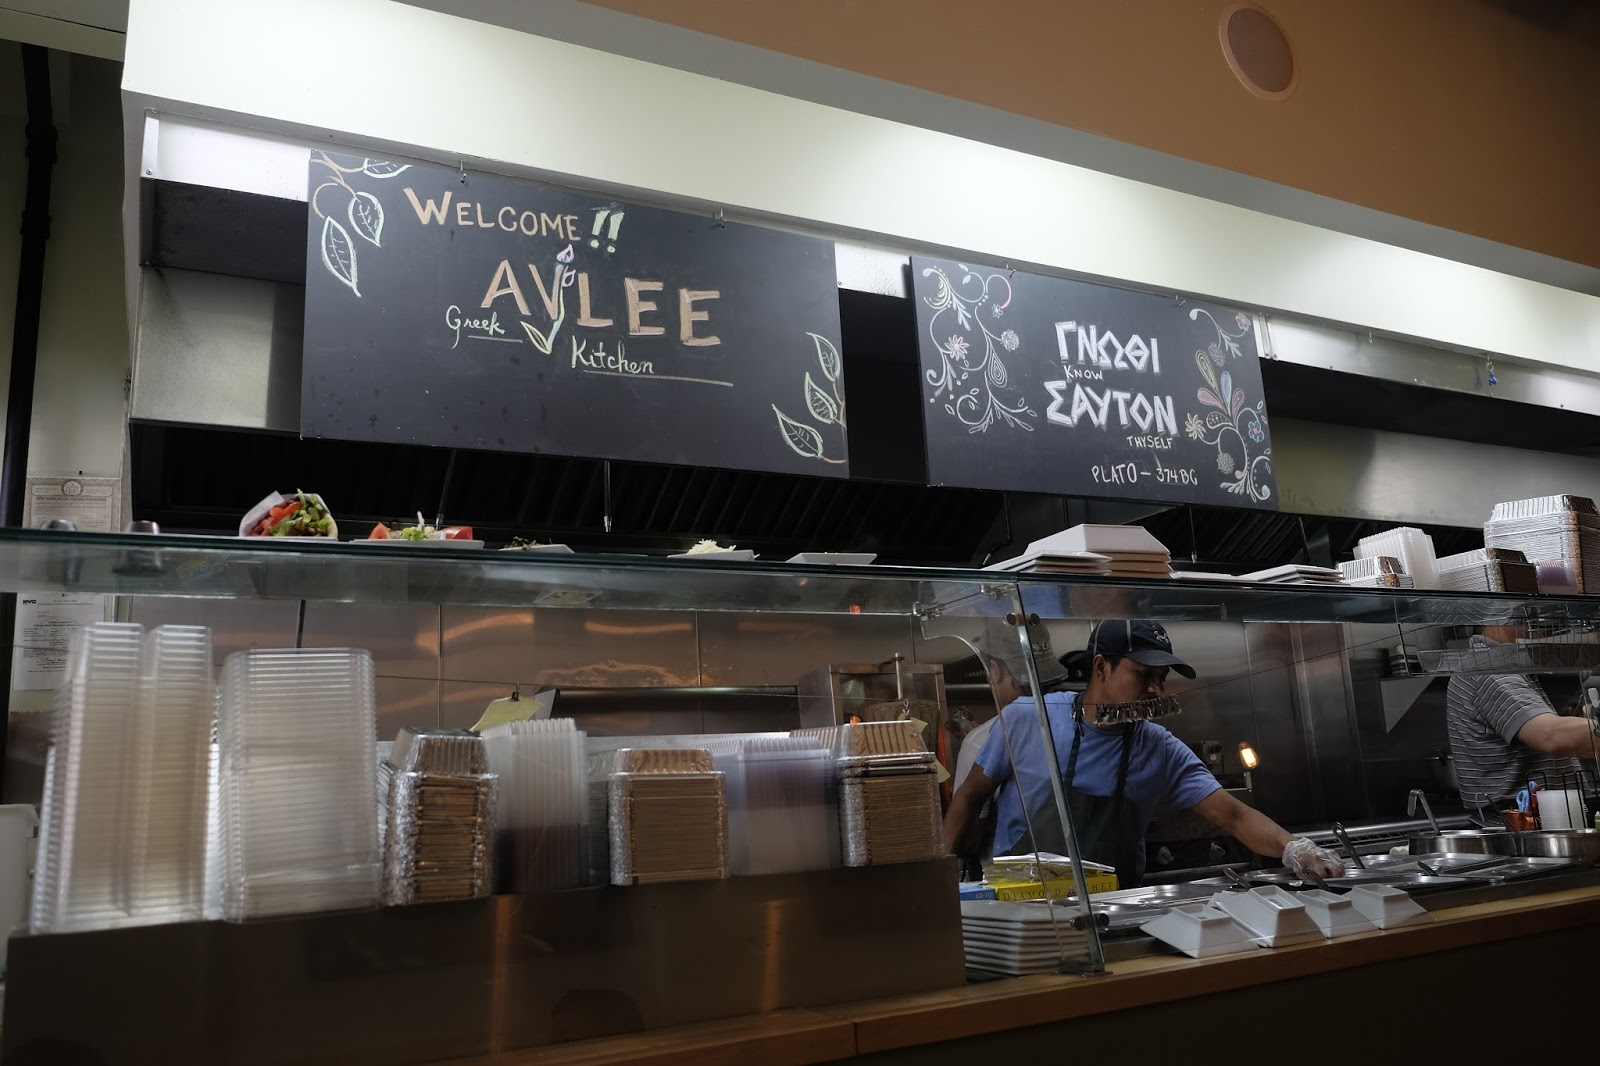 NYC - Get your Greek on at Avlee Greek Kitchen | The Chopping Board